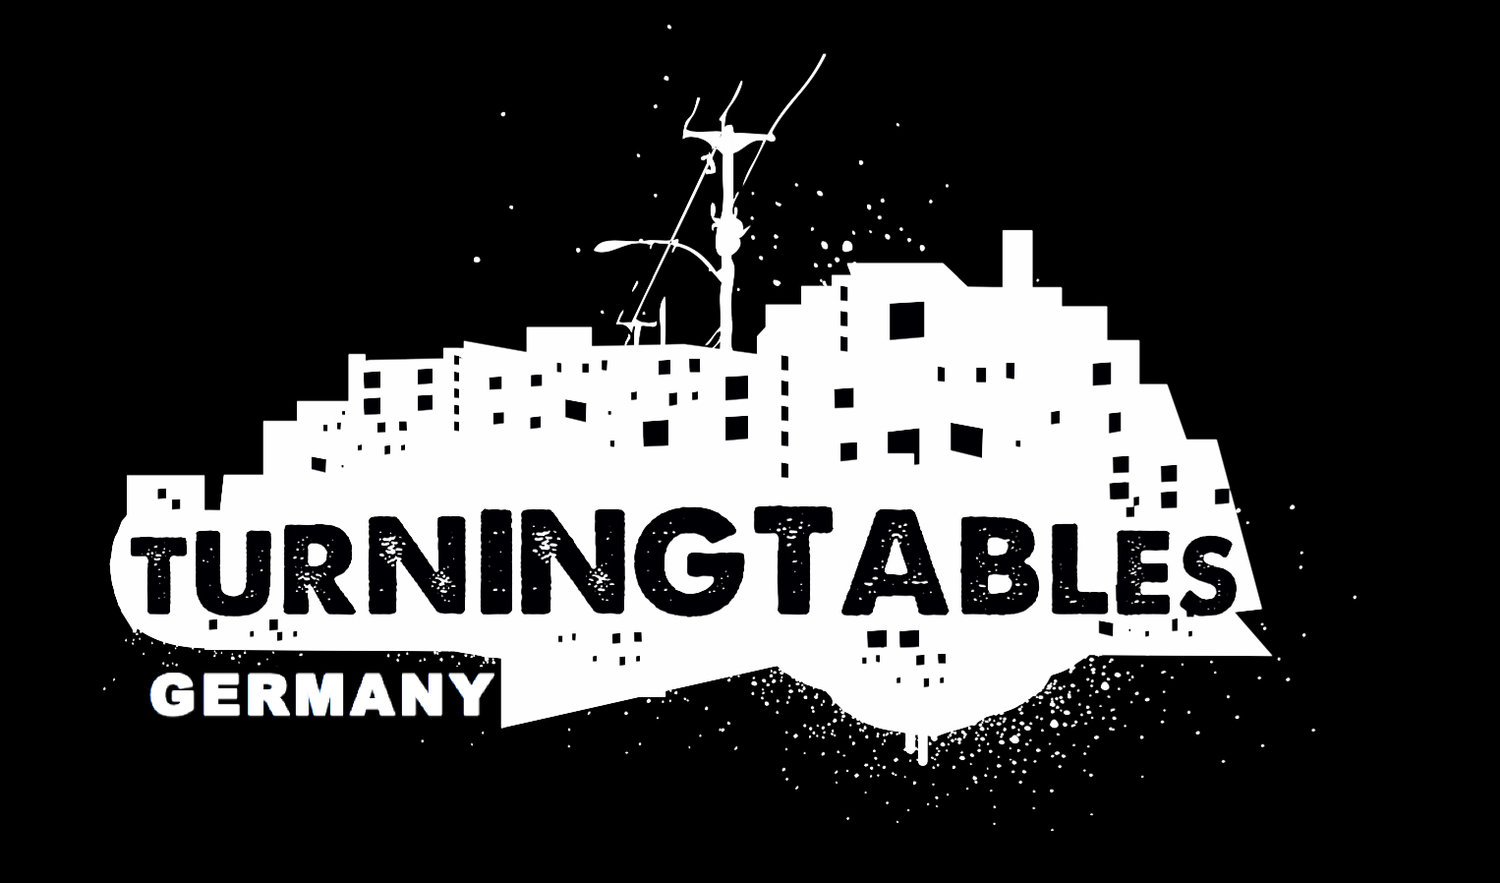 Turning Tables Germany